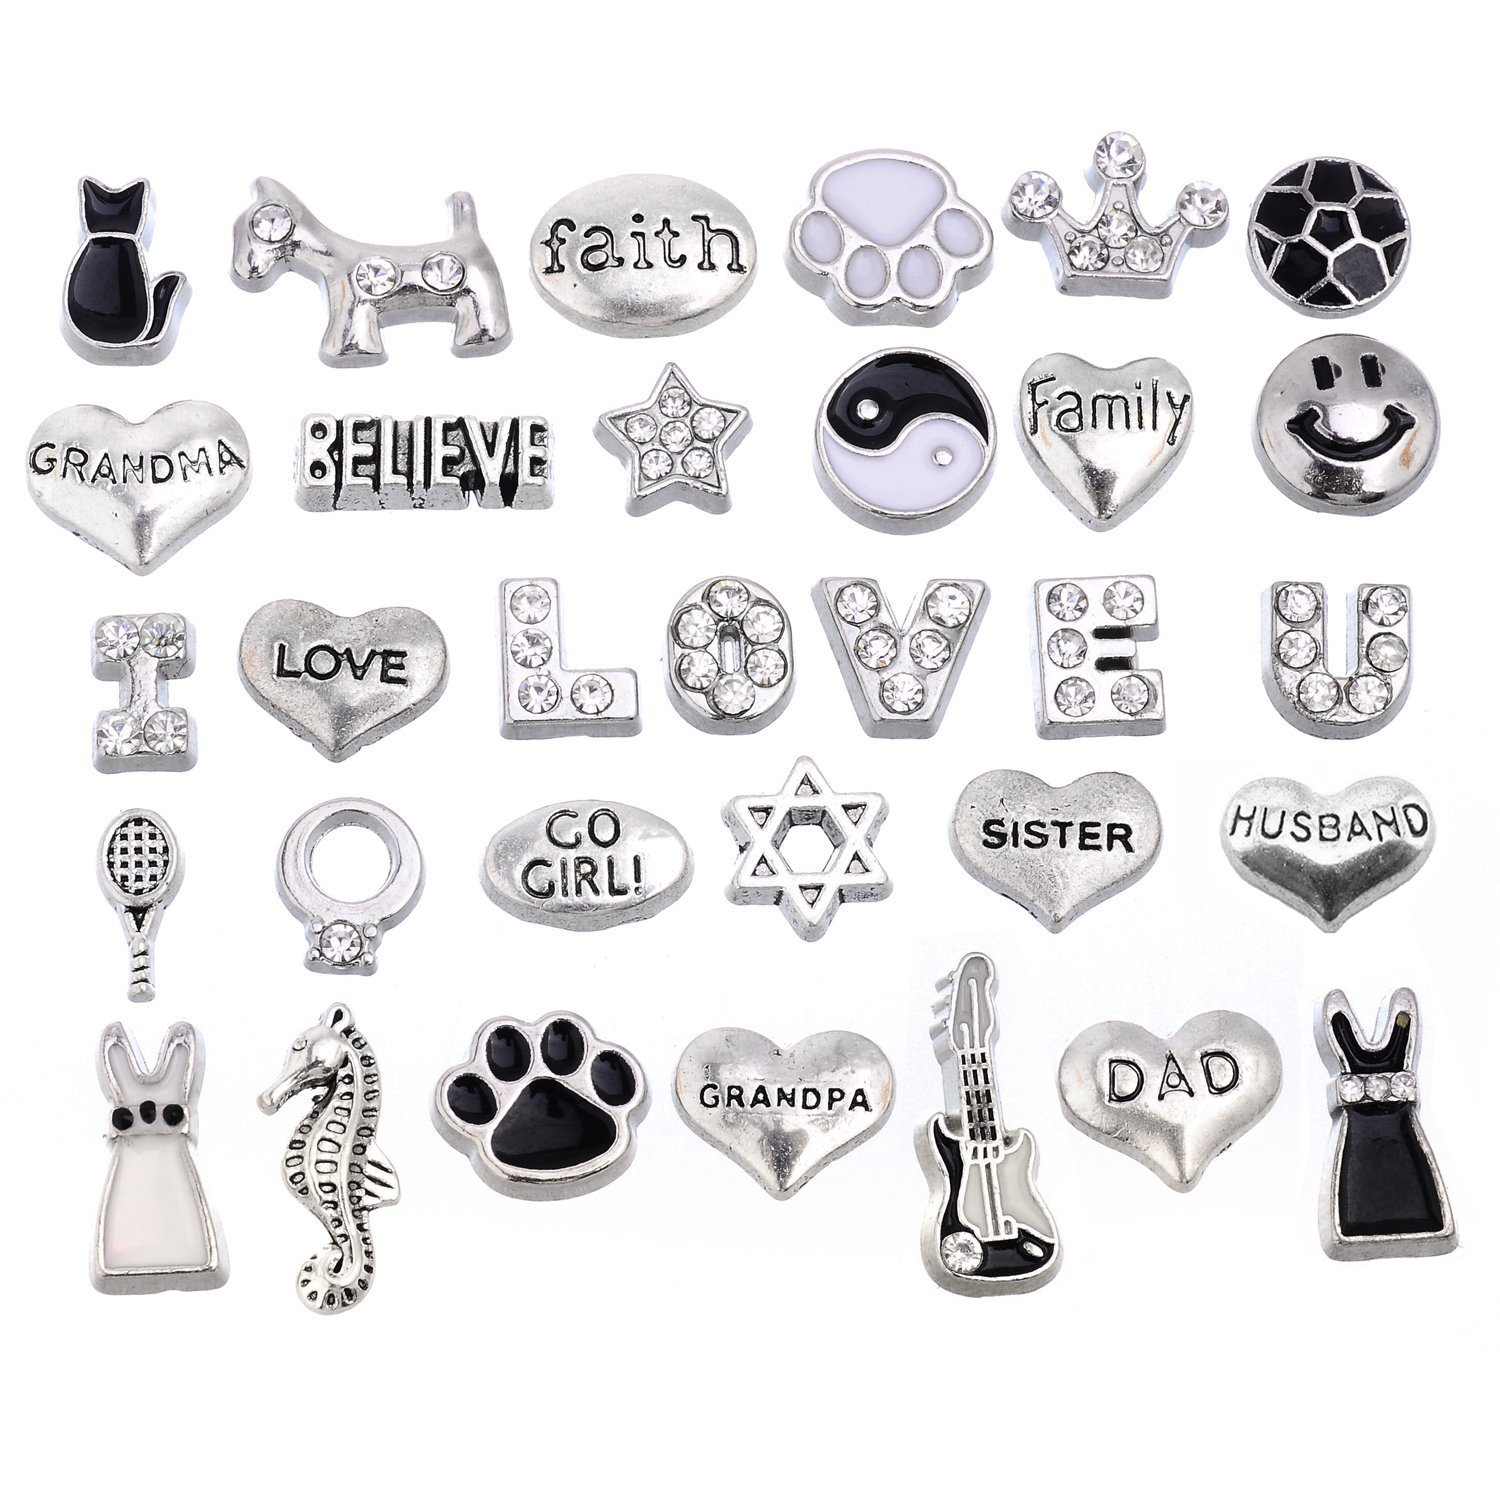 RUBYCA 32pcs Mix Floating Charms Lot for Glass Living Memory Lockets Black and White Silver Color by RUBYCA   B015QETC6W